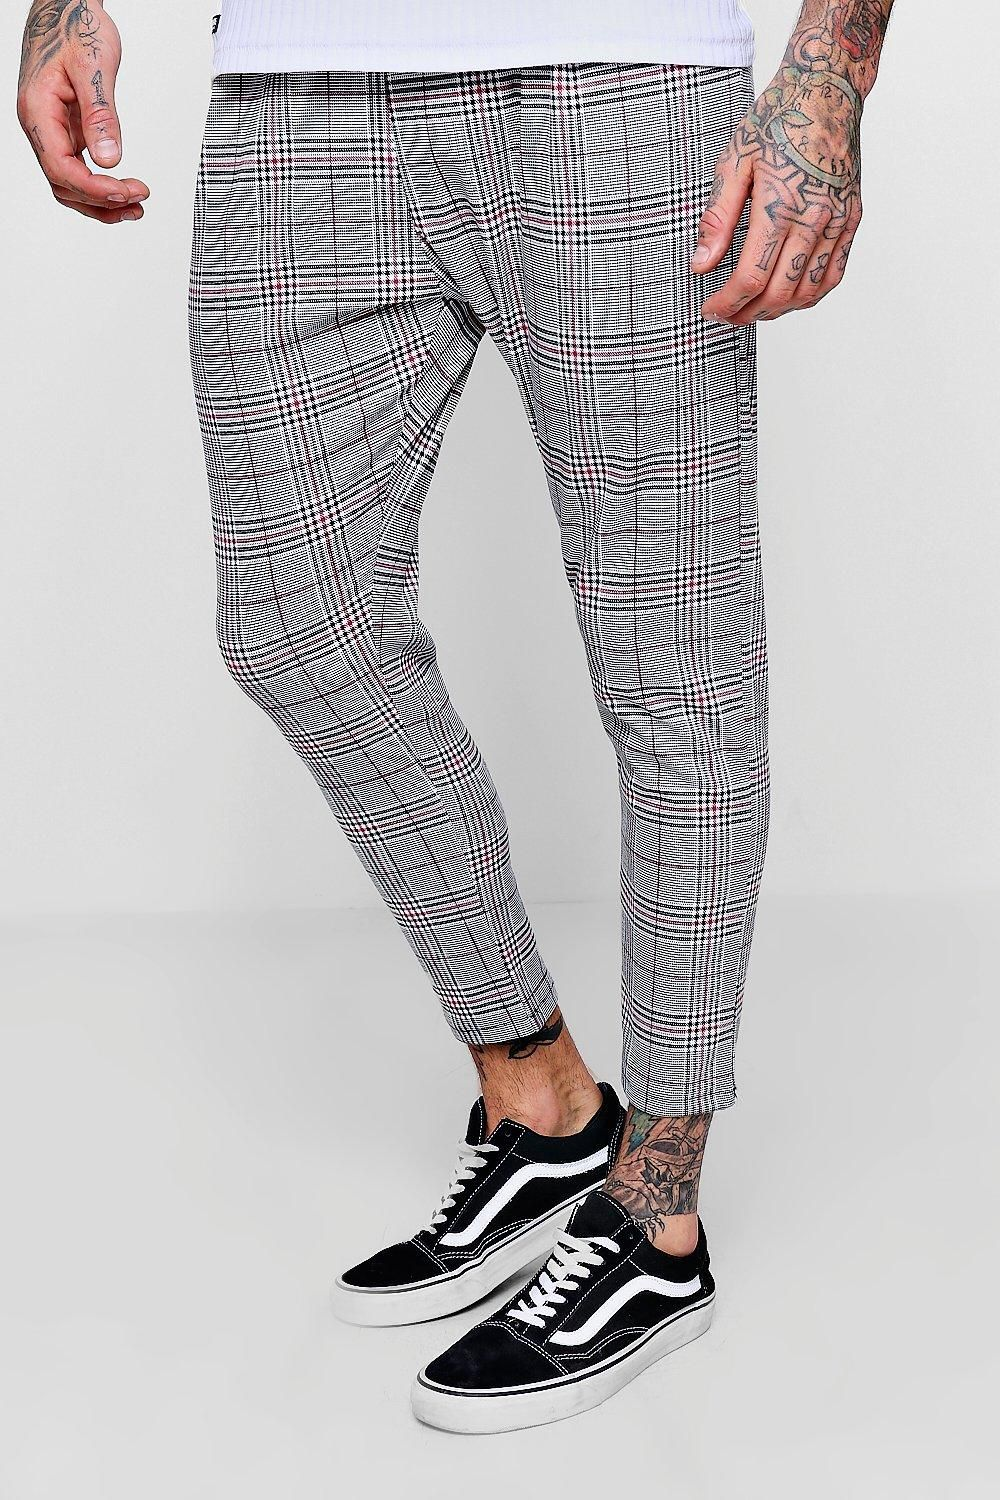 7a8cc261 Shop Prince Of Wales Red Check Smart Jogger at boohooMAN. Discover our  range of men's Mens Occasionwear Sz L